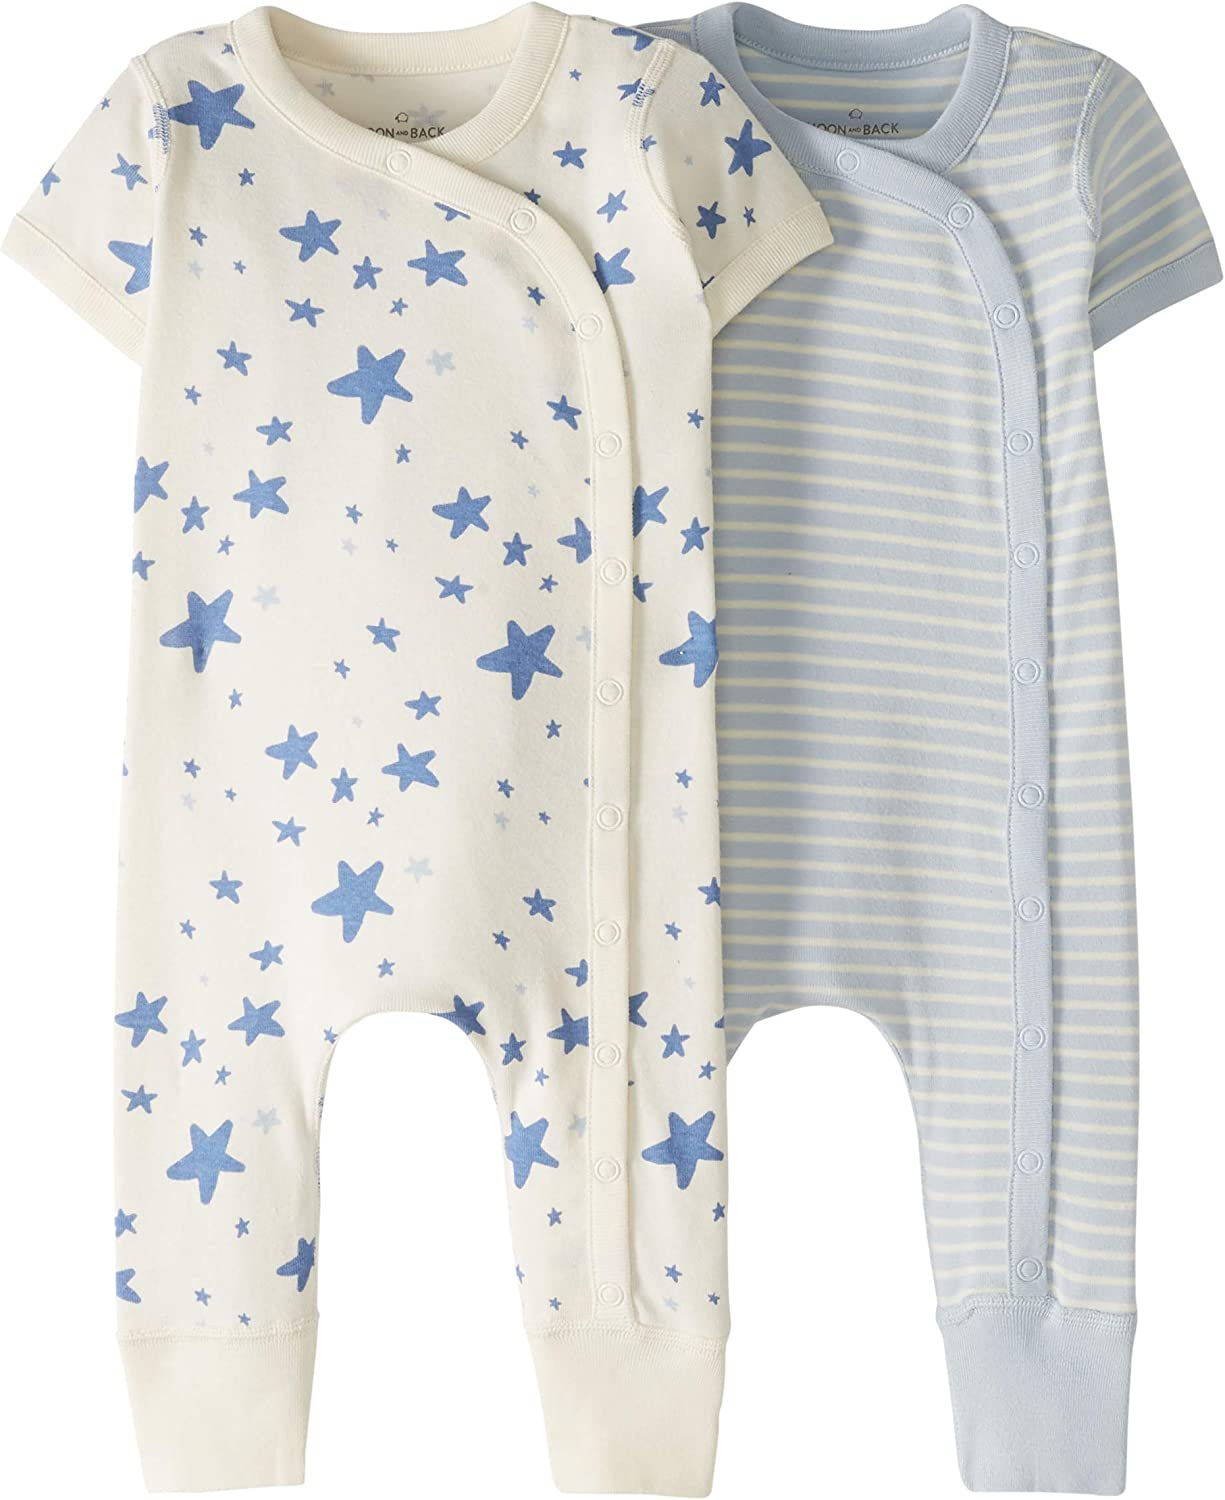 Moon and Back by Hanna Andersson Baby Boys and Girls 2-Pack One-Piece Organic Cotton Short Sleeve Romper